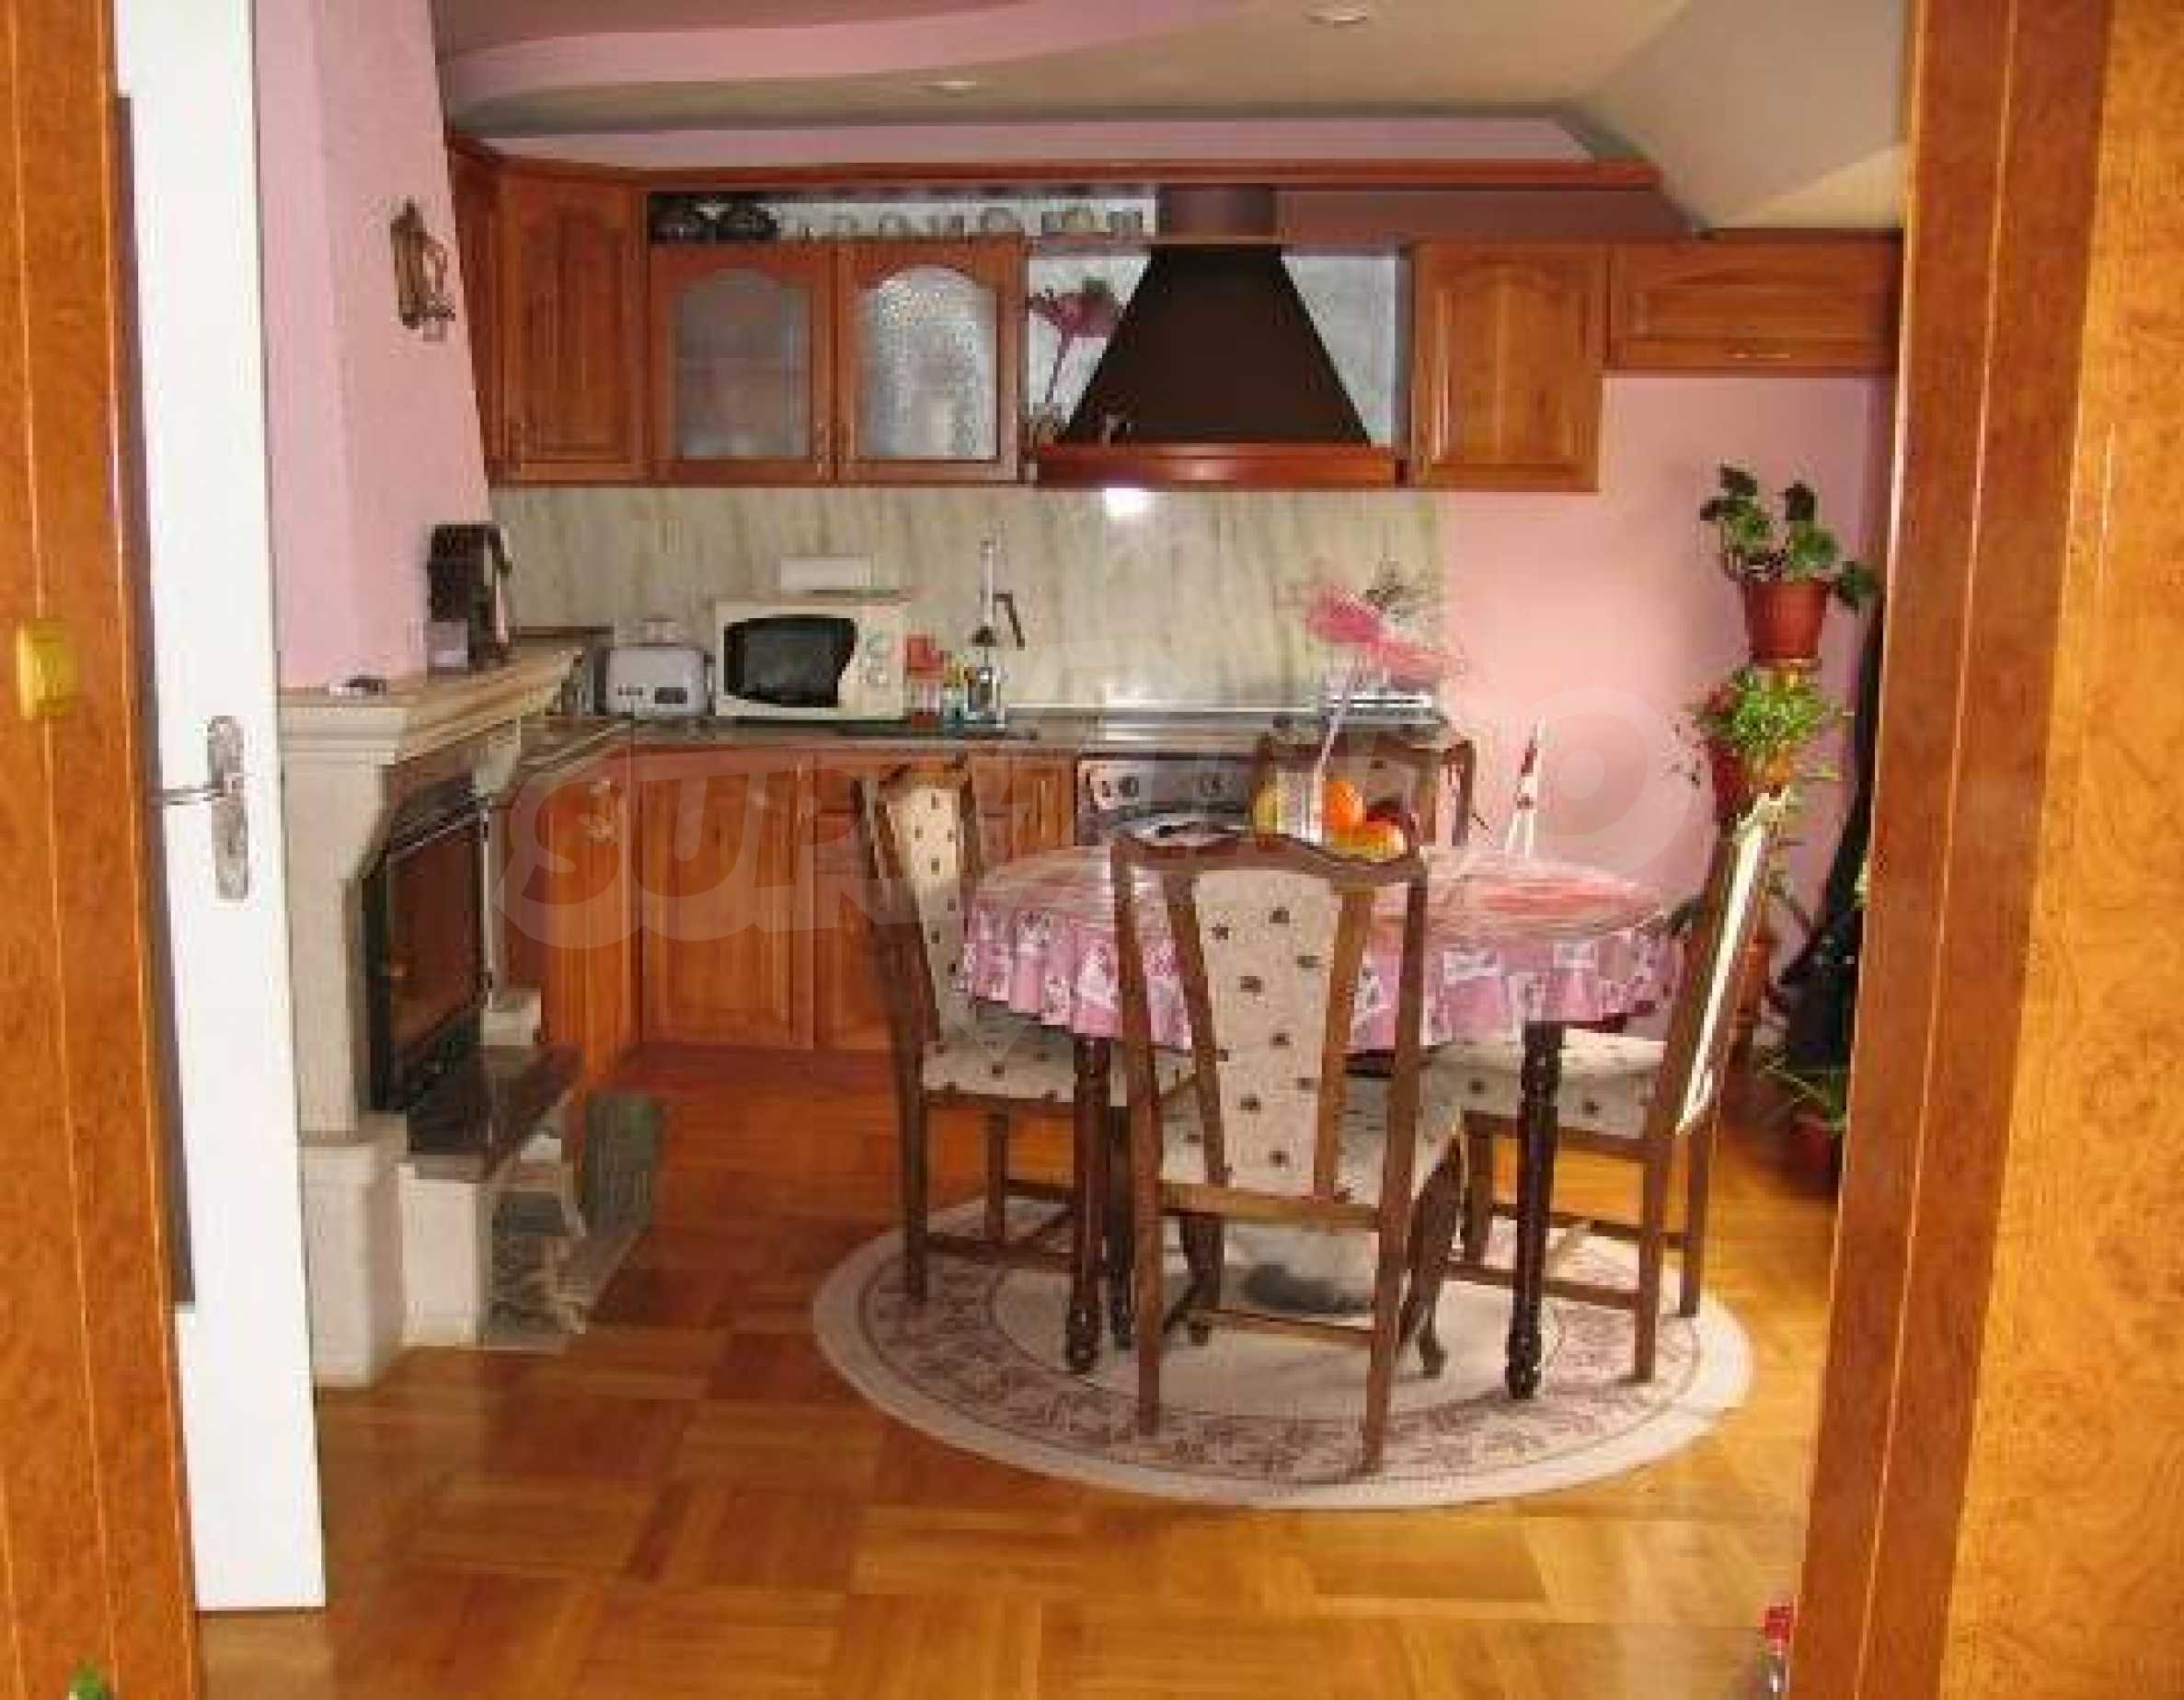 2-bedroom apartment in the absolute centre of Dobrich